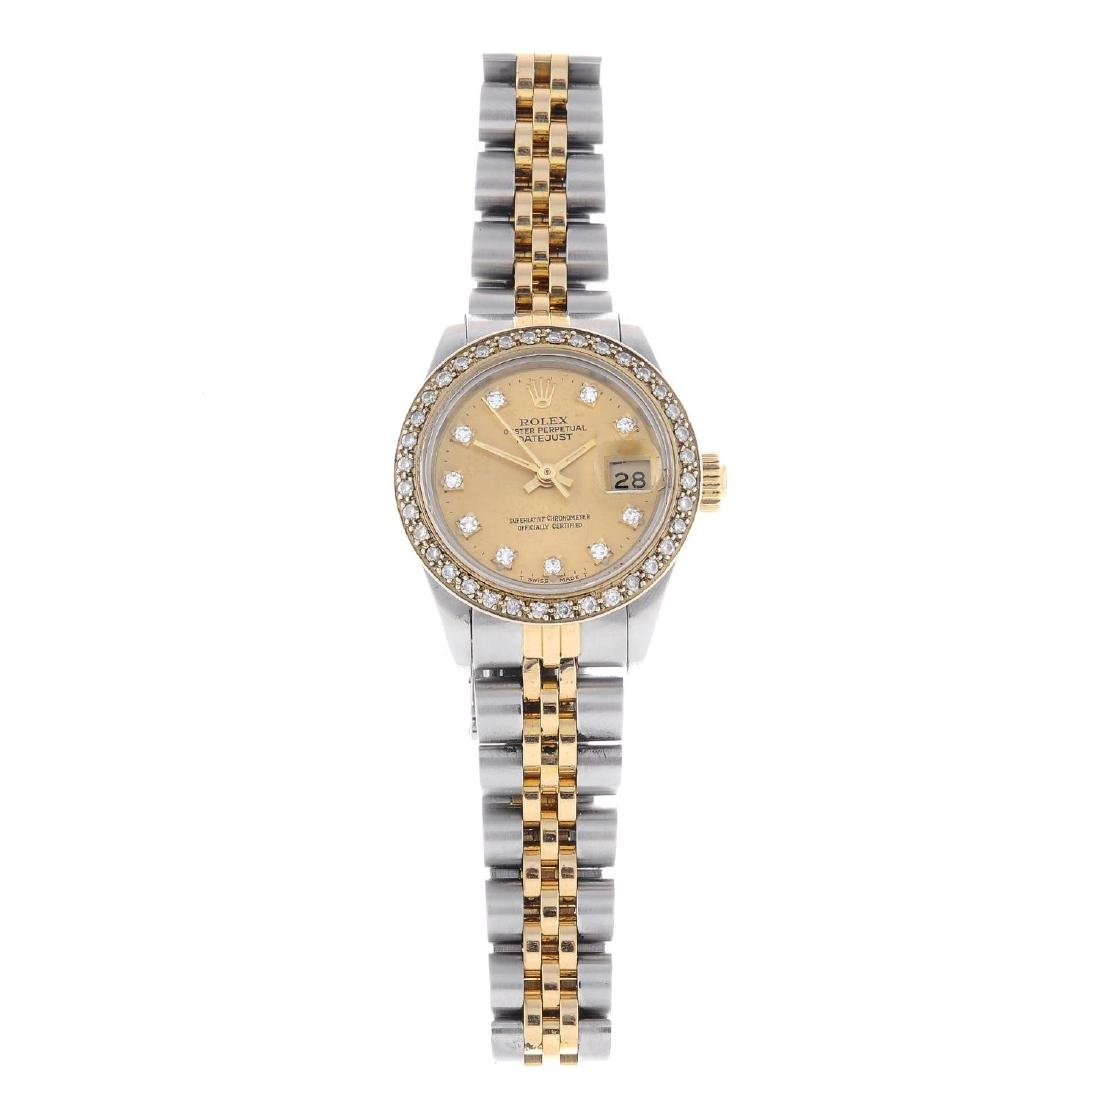 ROLEX - a lady's Oyster Perpetual Datejust bracelet